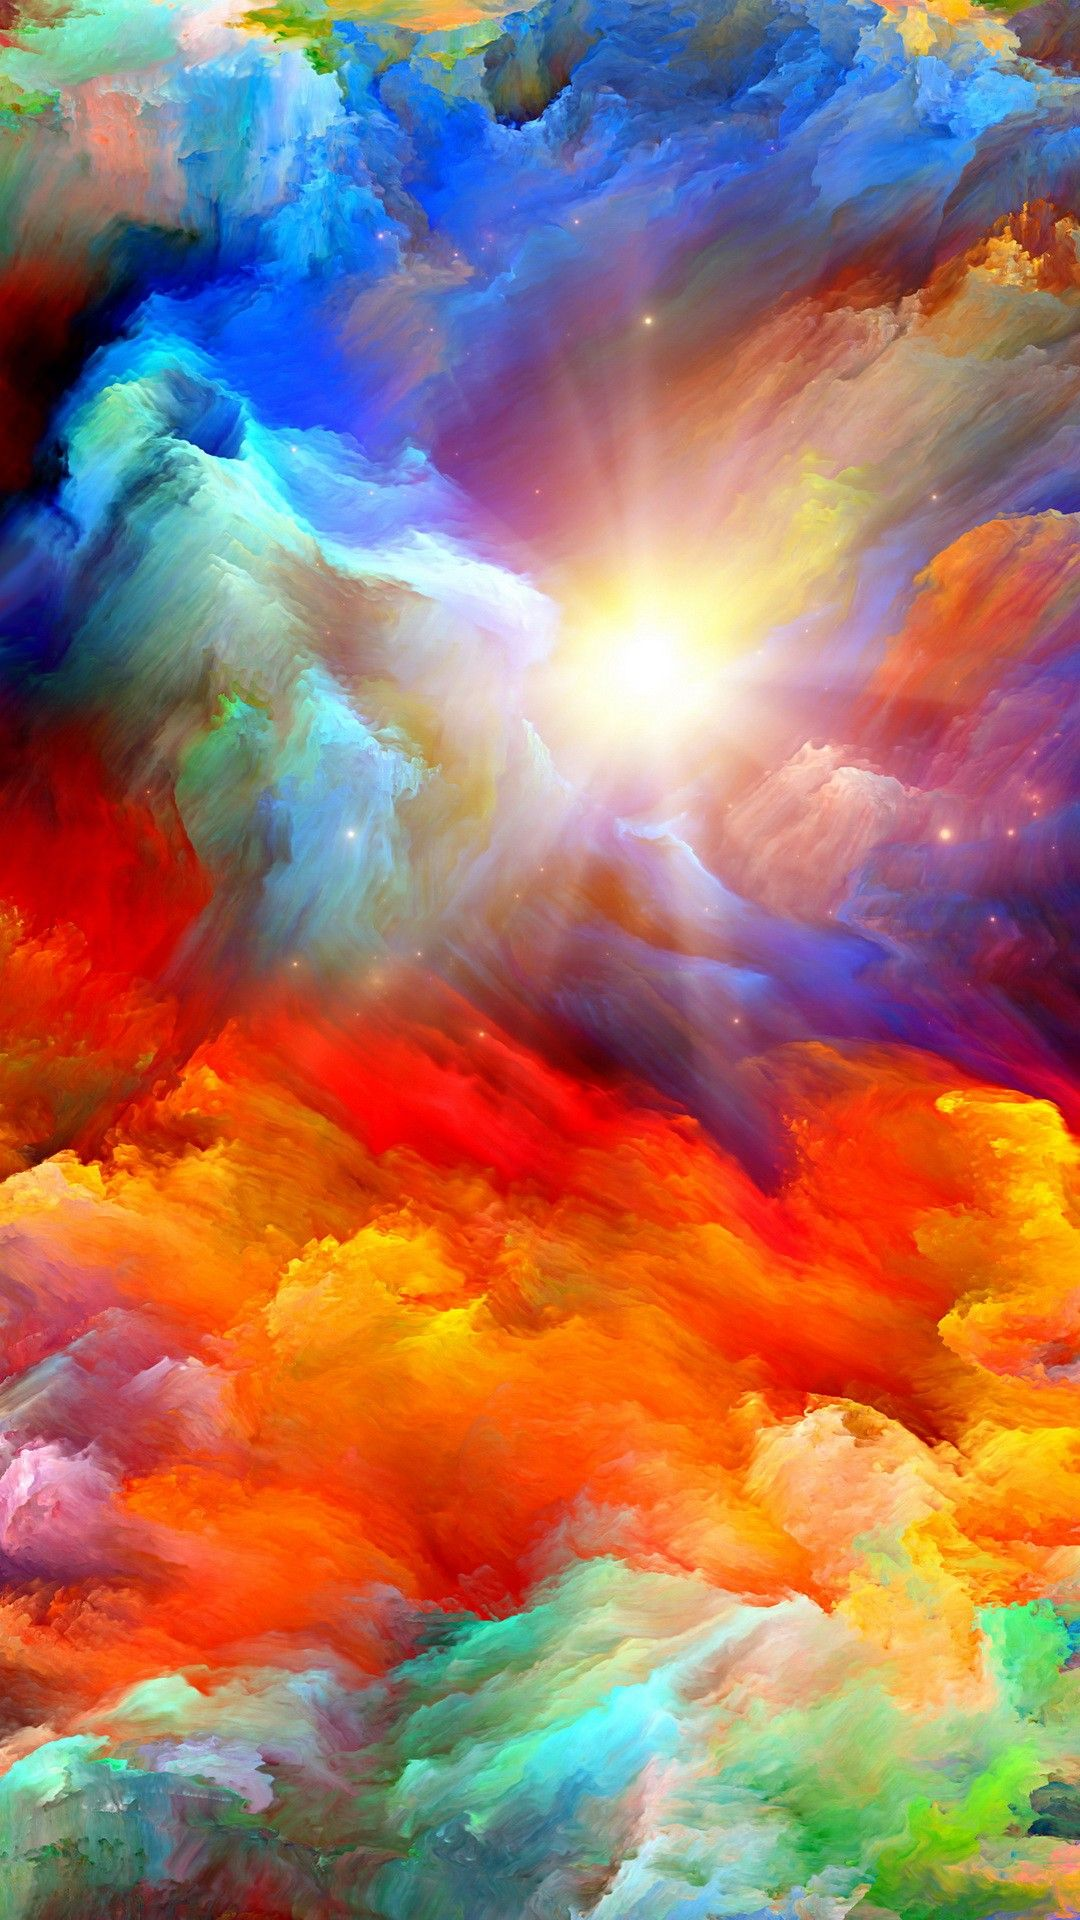 creative wallpaper colorful - Google Search | Color ...